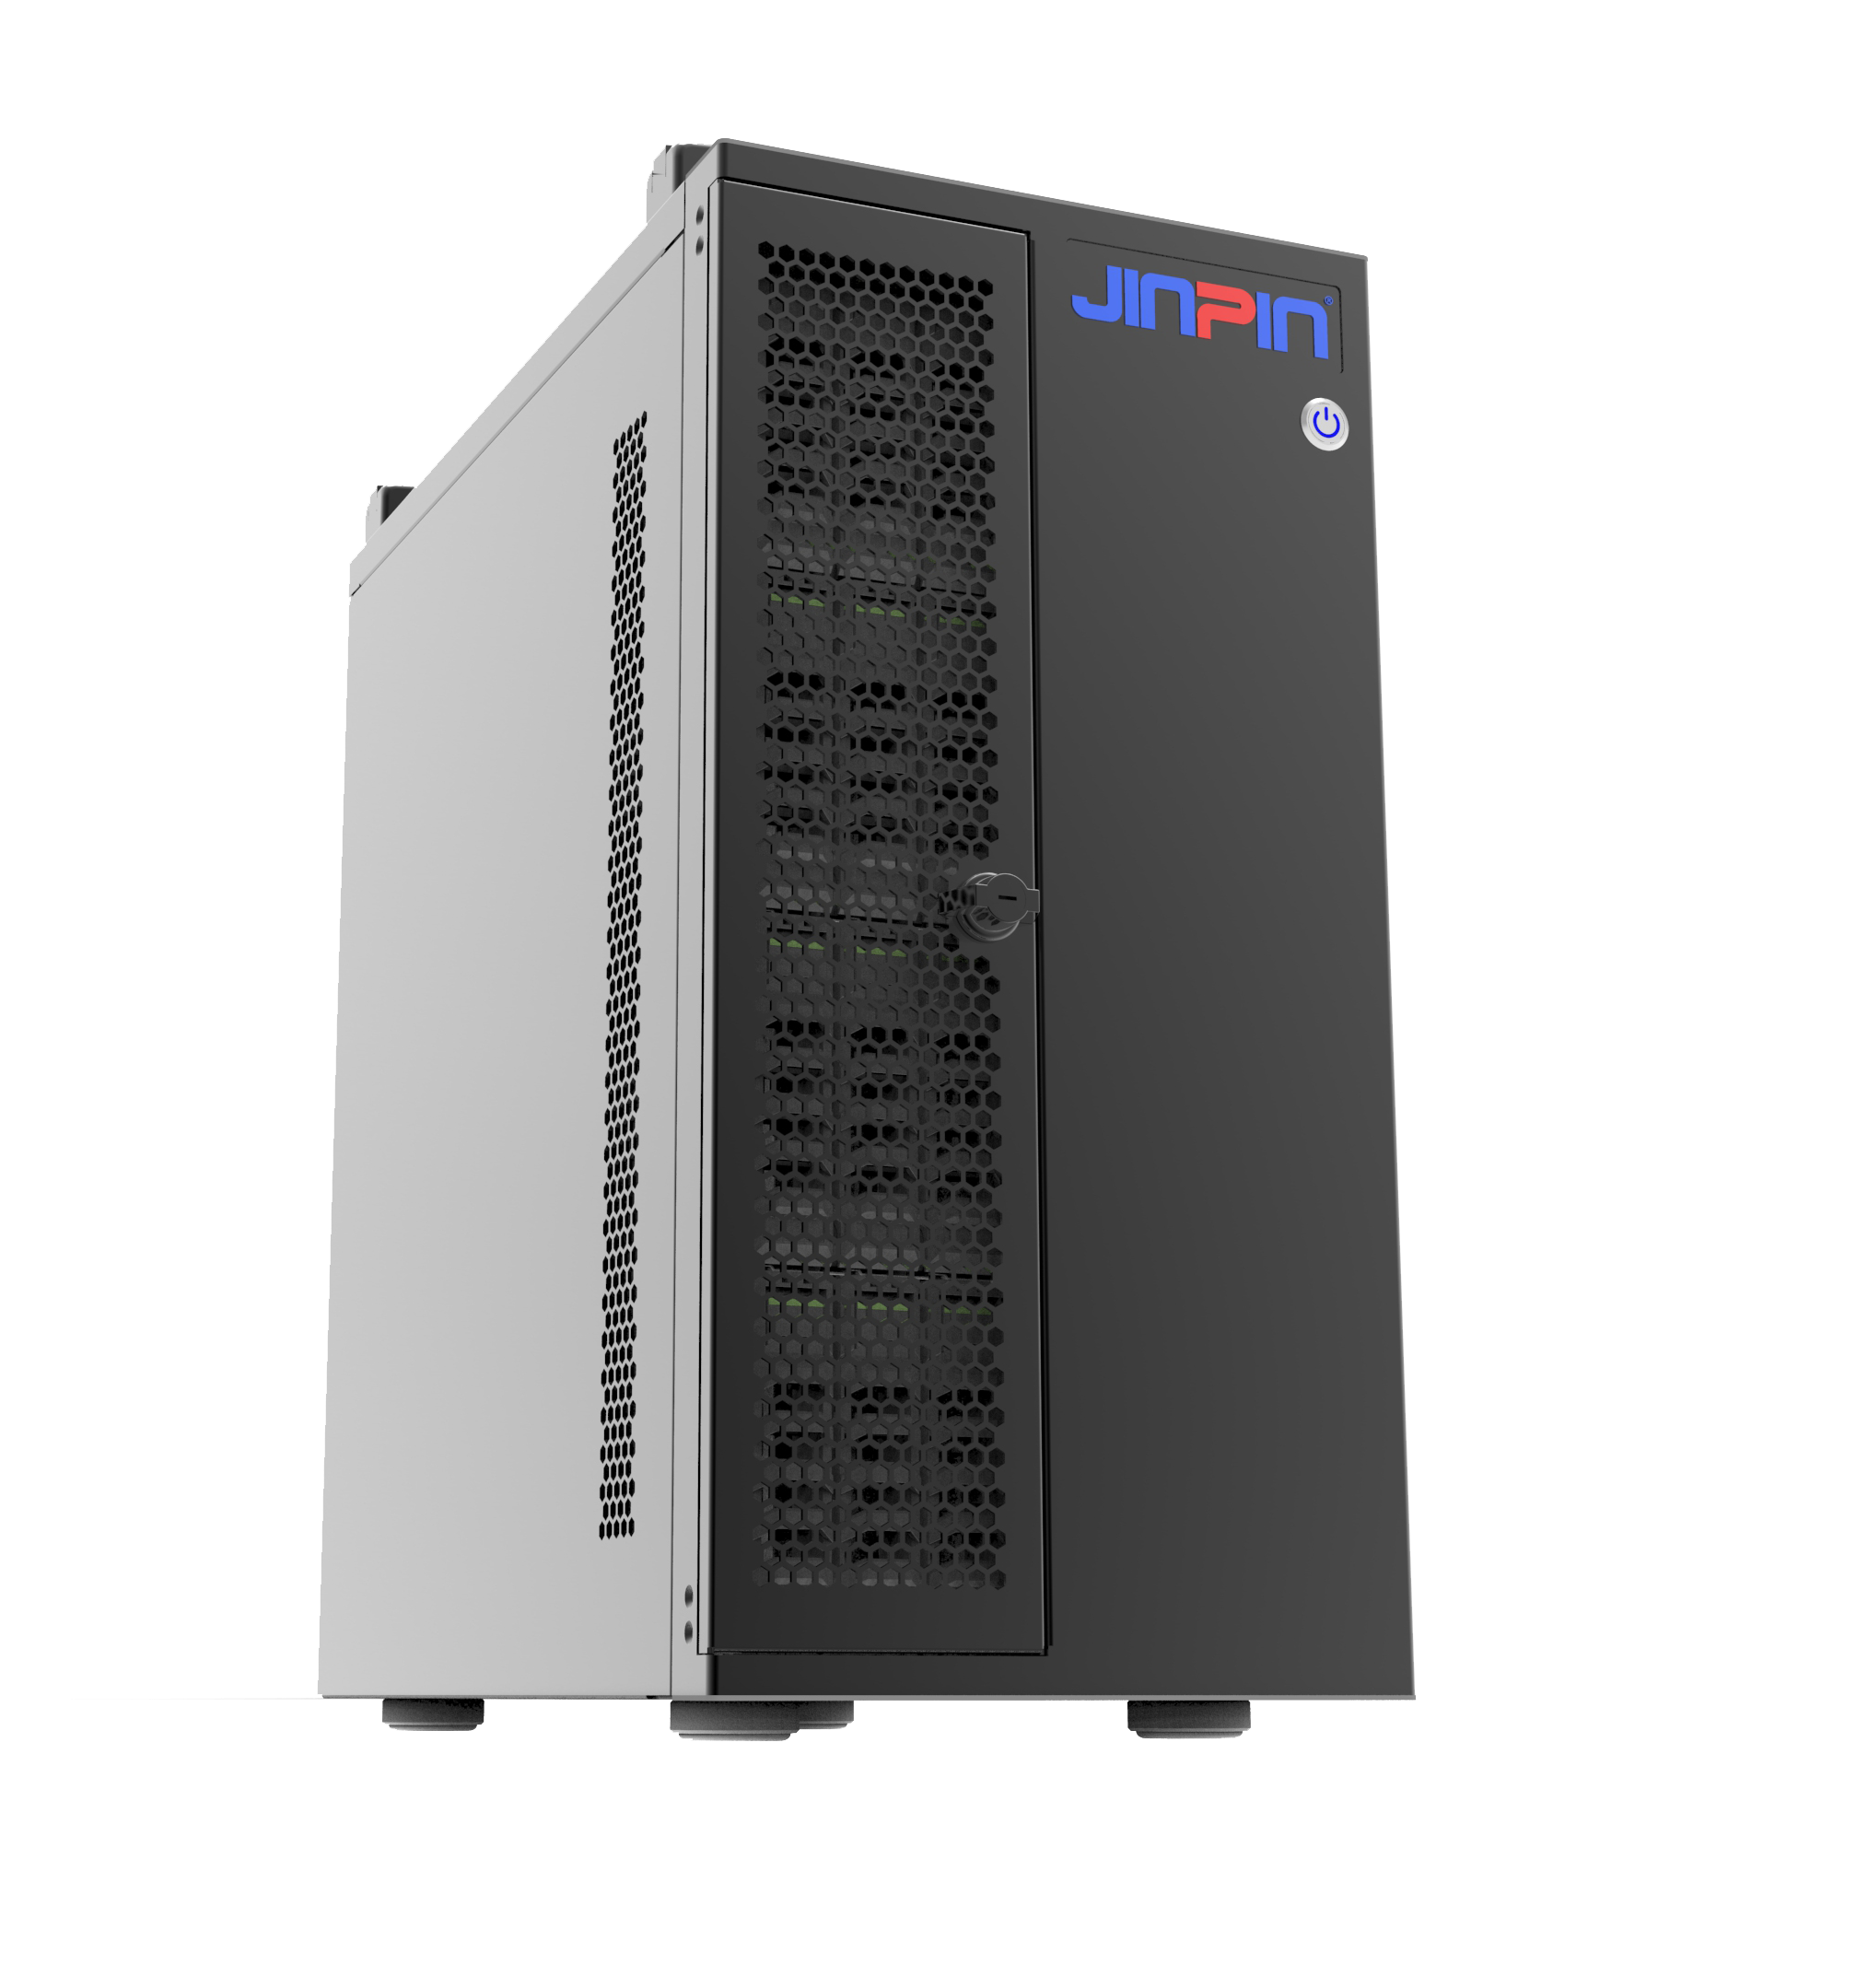 JINPIN Kstor 9012 Cloud storage